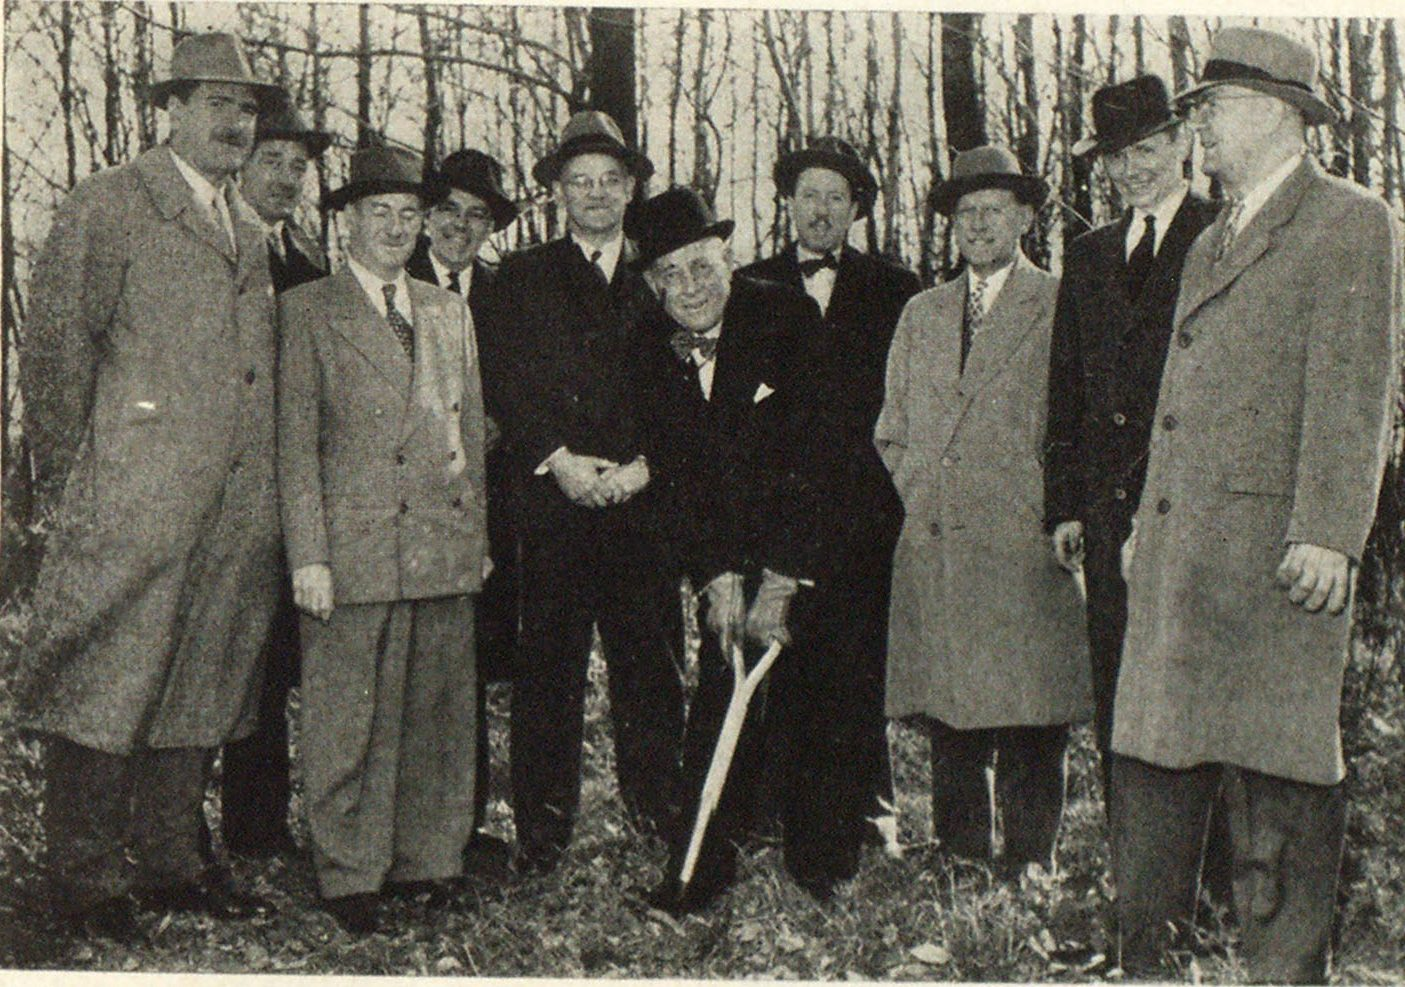 W. E. Baldwin, Honorary President, Underwriters' Laboratories of Canada, turns the first sod for the new Head Office and Testing Station being built by the Laboratories at the Scarborough, Ontario, site. Pictured from left to right are: Alex. S. Hamilton, G. C. Hunter, A. Leslie Ham, J. E. Haskins, Roy B. Whitehead, W. E. Baldwin, R. L. Young, N. G. Bethune, E. F. Tabisz, and L. L. Lewis.